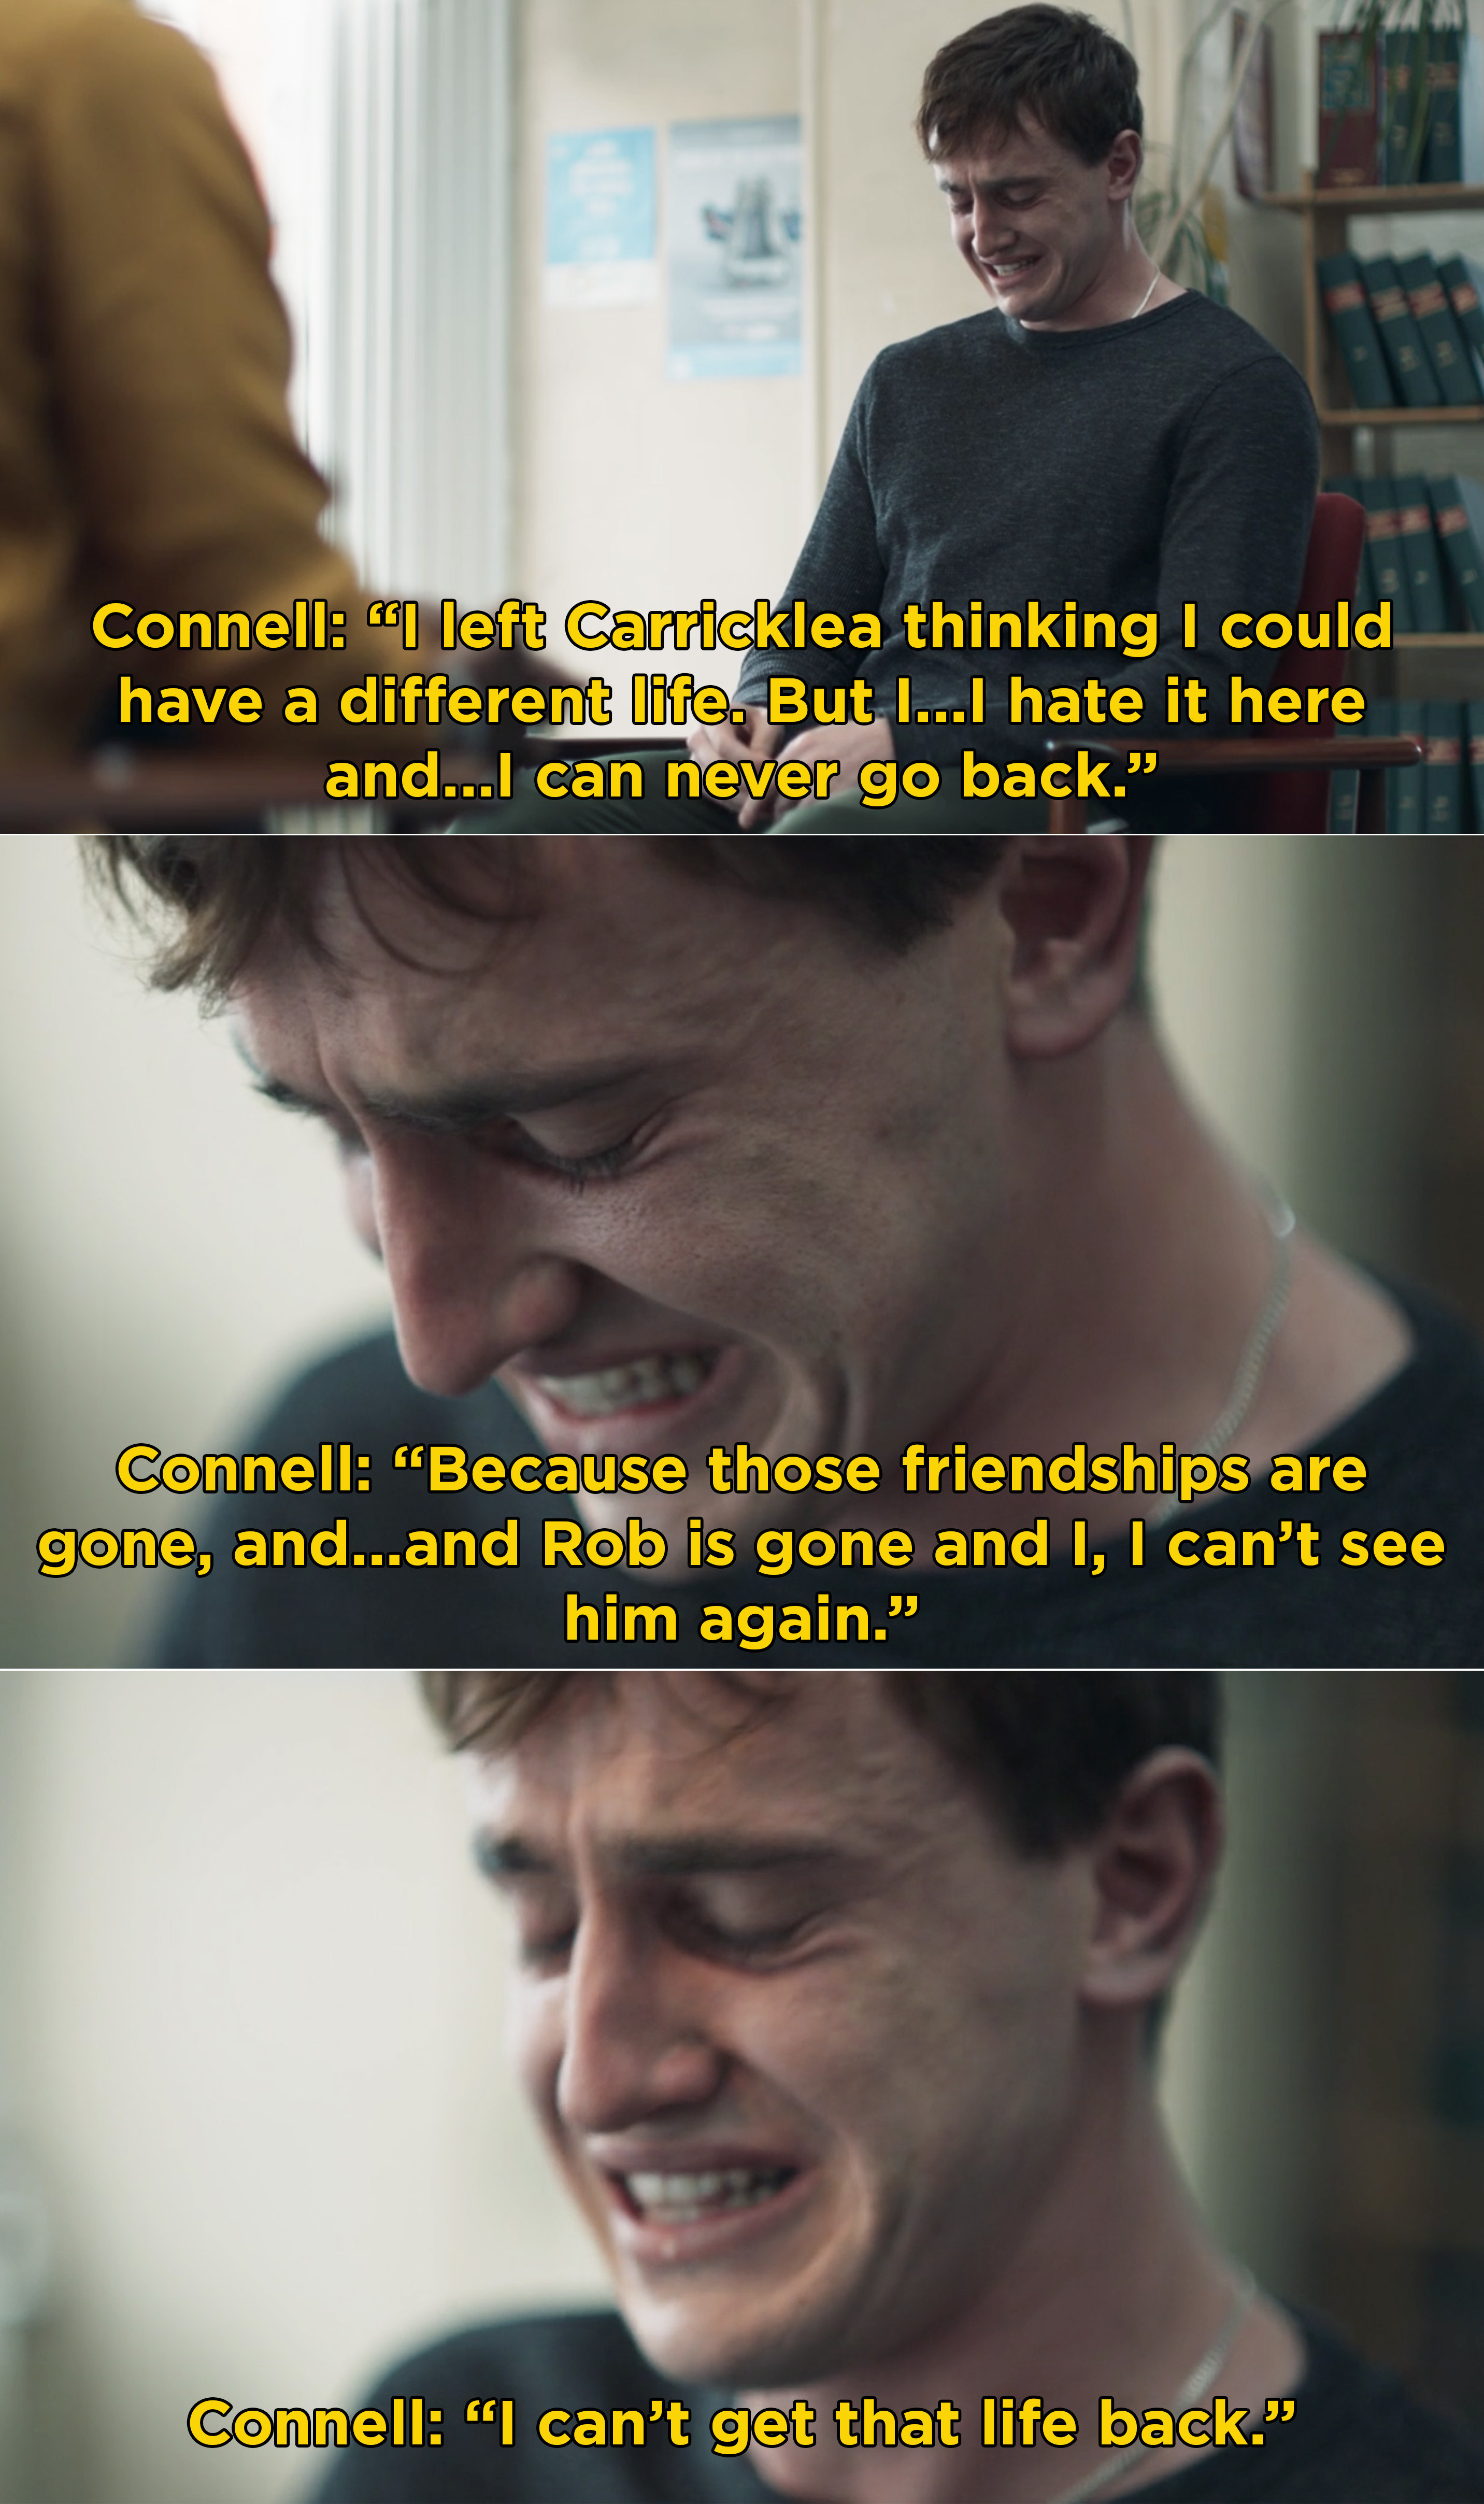 Connell weeping and saying he wishes he could go back to his old life and see Rob again, but he's gone